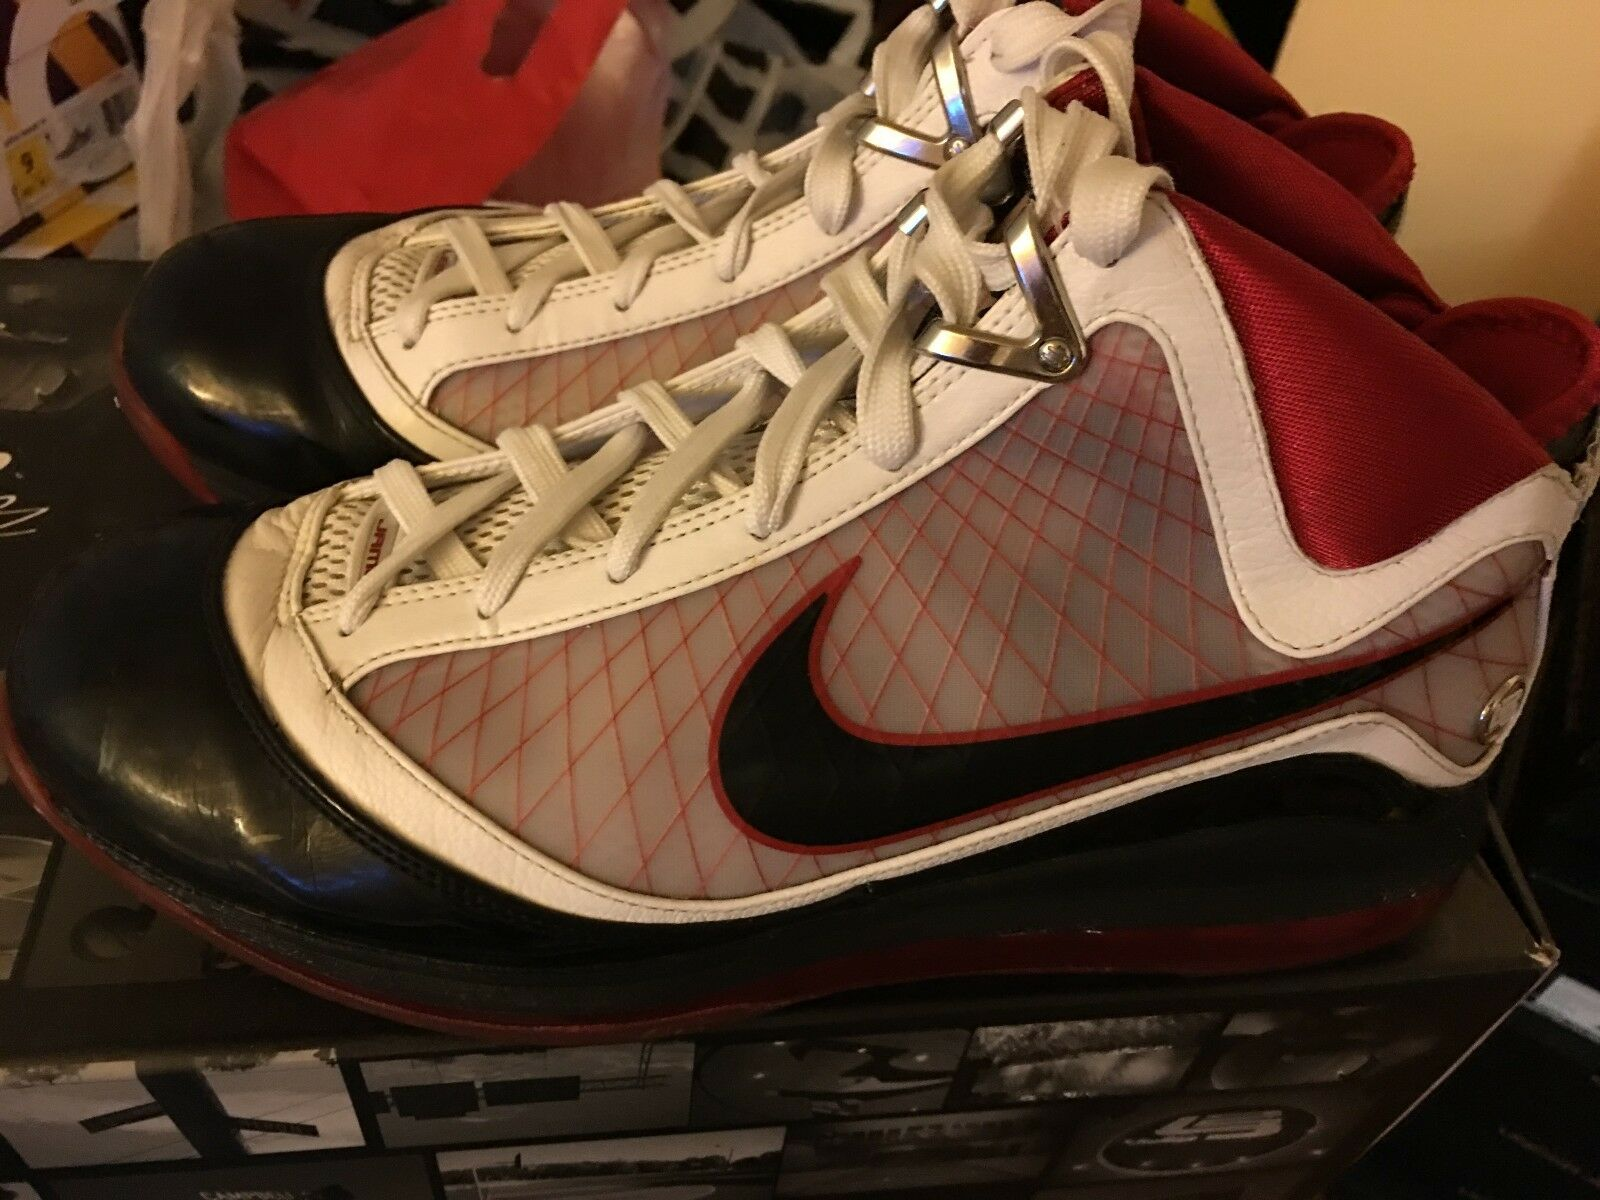 nike Lebron 7 VII Home Cavs size 10.5 Worn - great condition New shoes for men and women, limited time discount